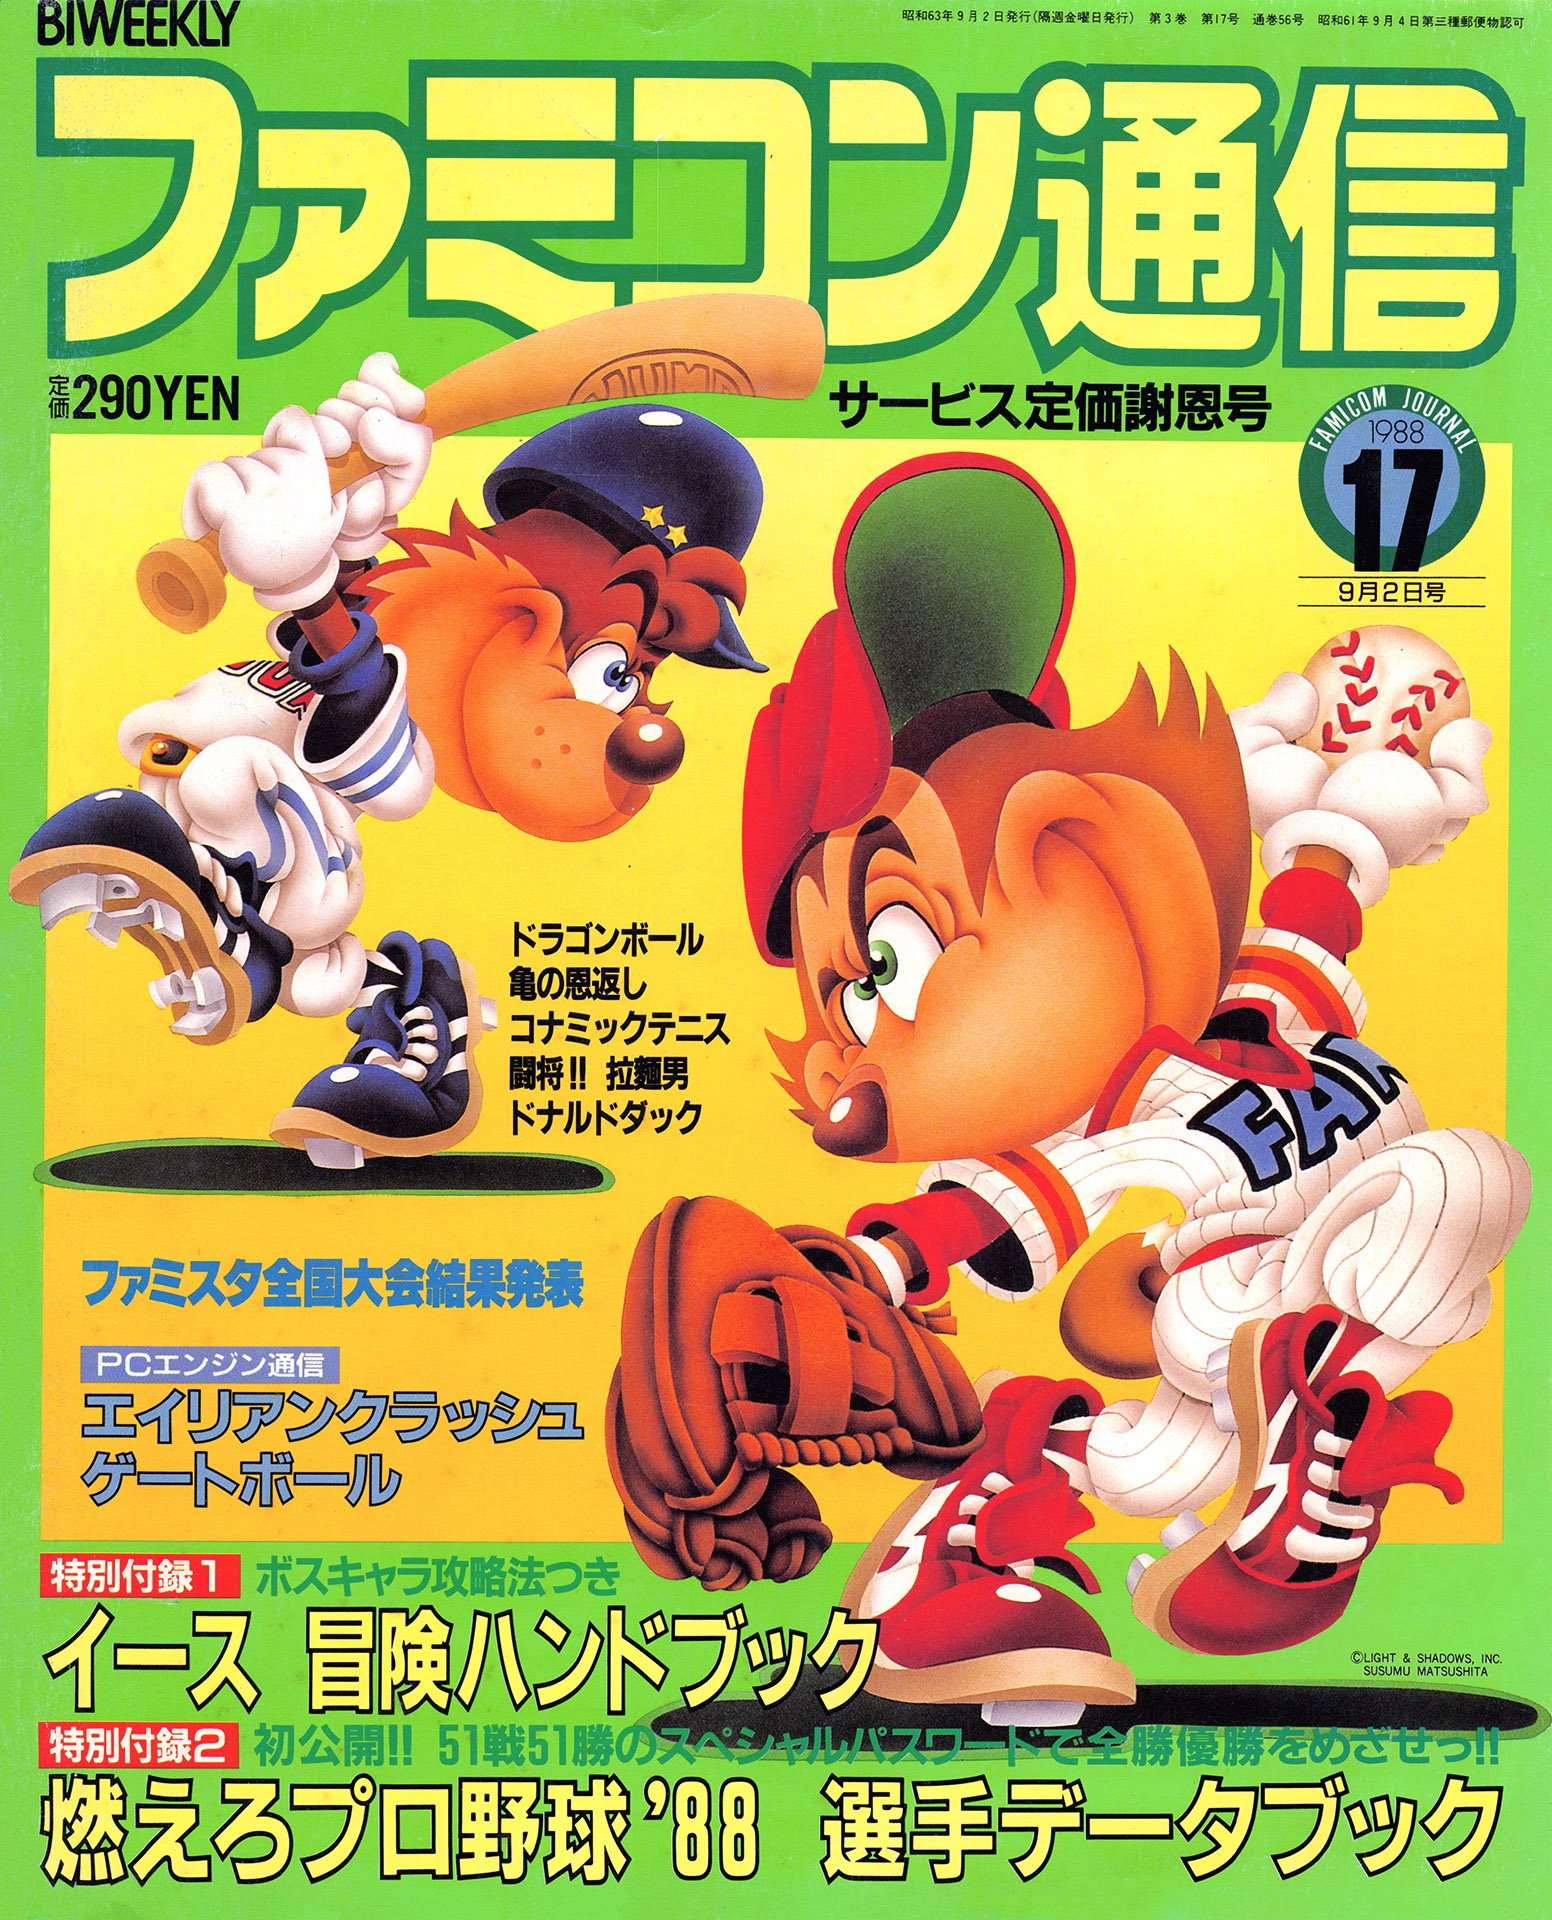 New Release - Famitsu Issue 0056 (September 2, 1988)